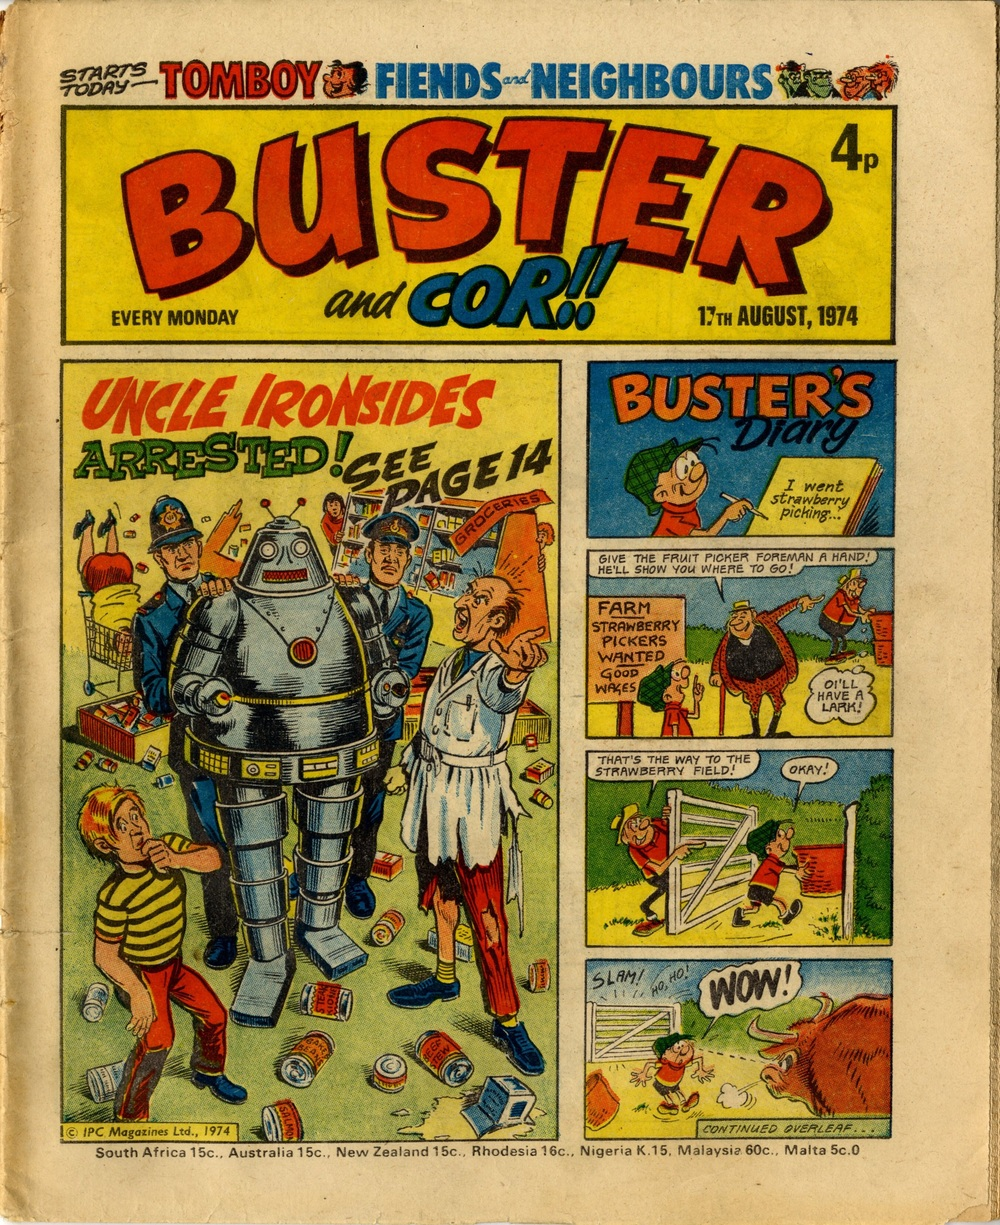 17 August 1974: Buster and Cor!! (Uncle Ironsides: Doug Maxted (artist), Buster's Diary: Reg Parlett (artist))